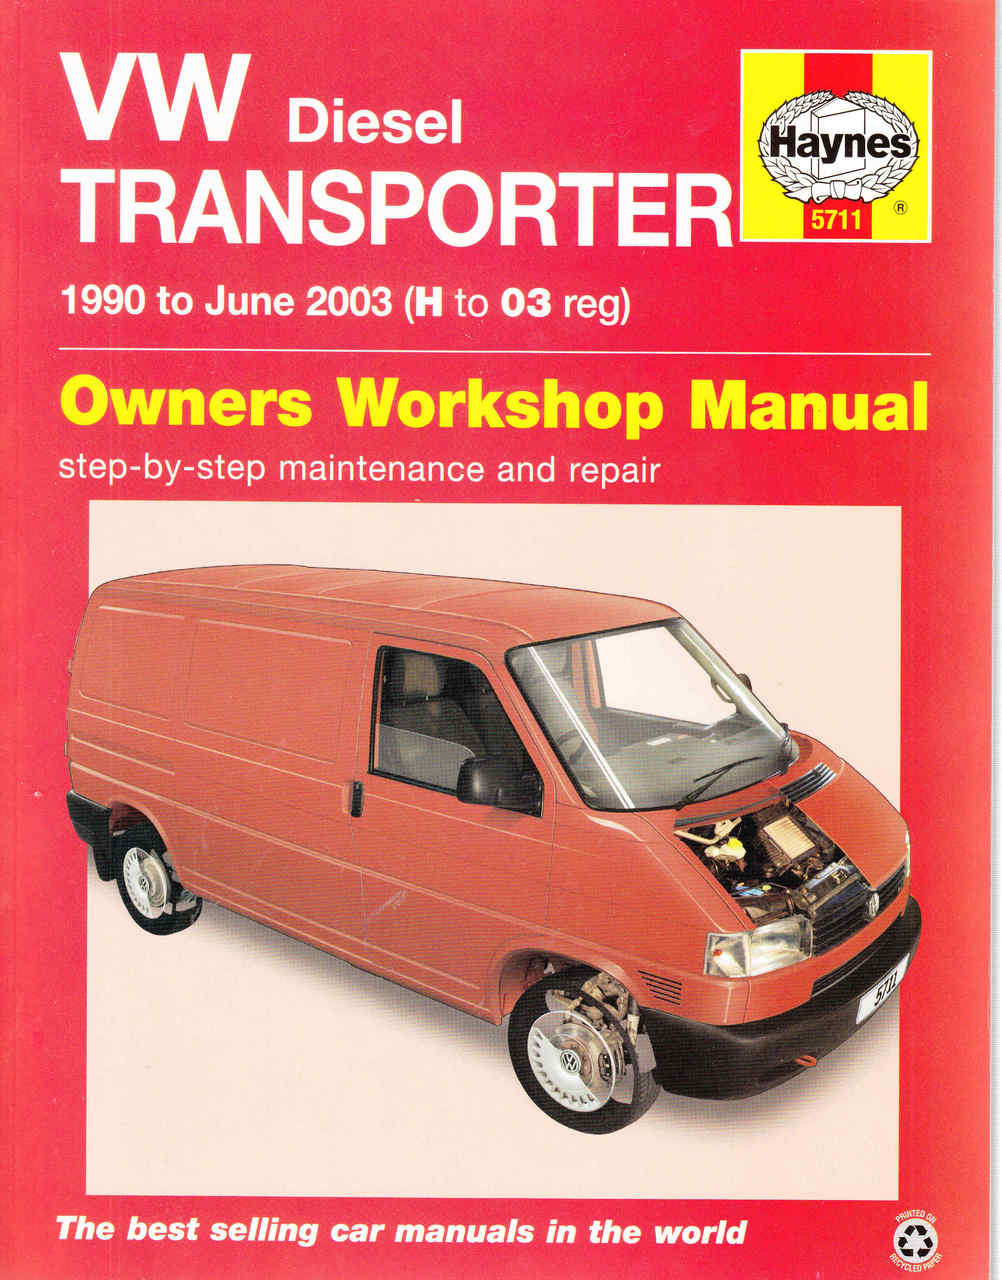 vw transporter t4 1990 to 2003 diesel workshop manual rh automotobookshop com au VW Caravelle Dimensions VW Caravelle Internal